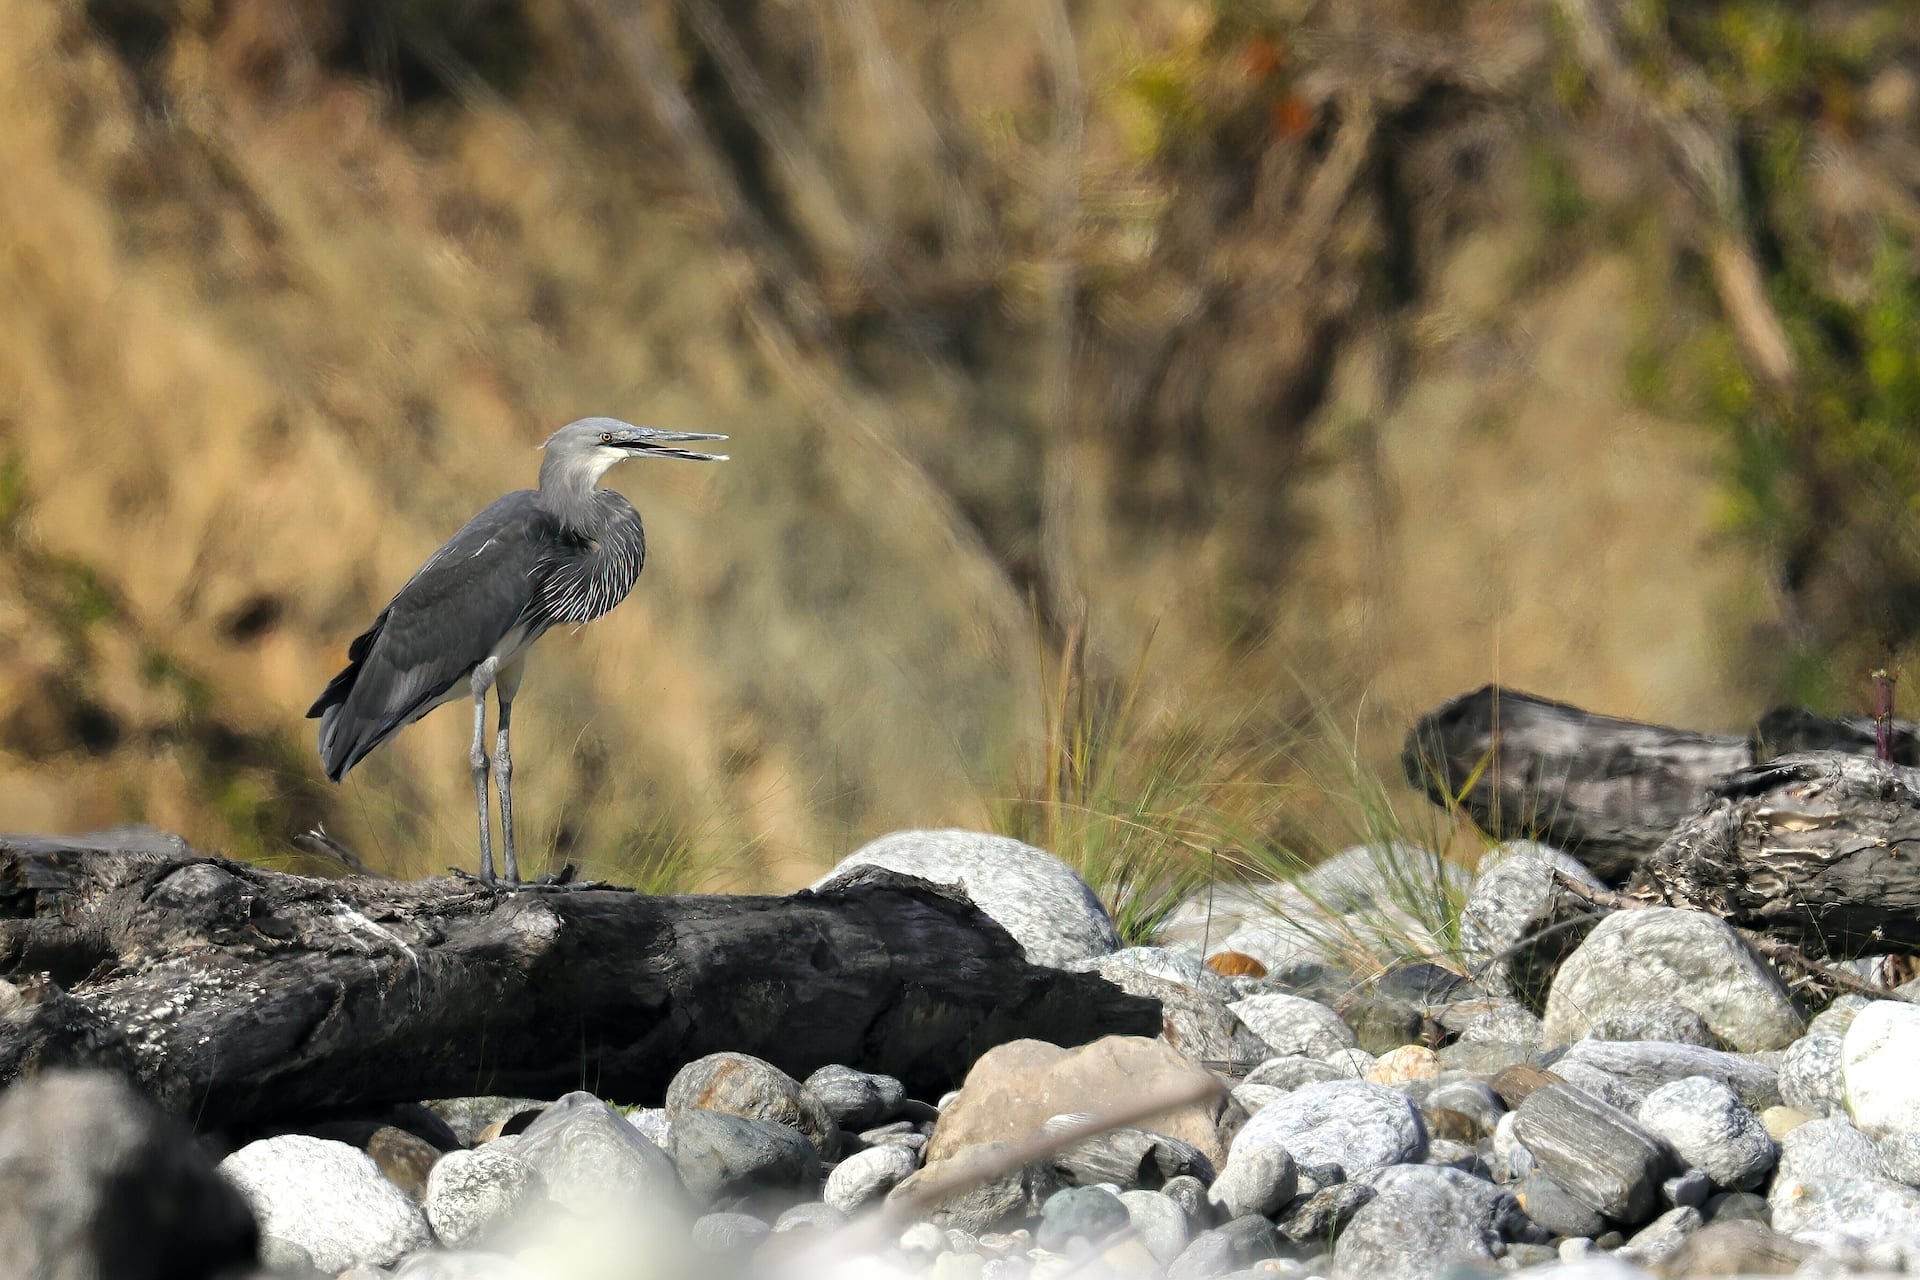 River Recluse: The White-bellied Heron of Namdapha National Park